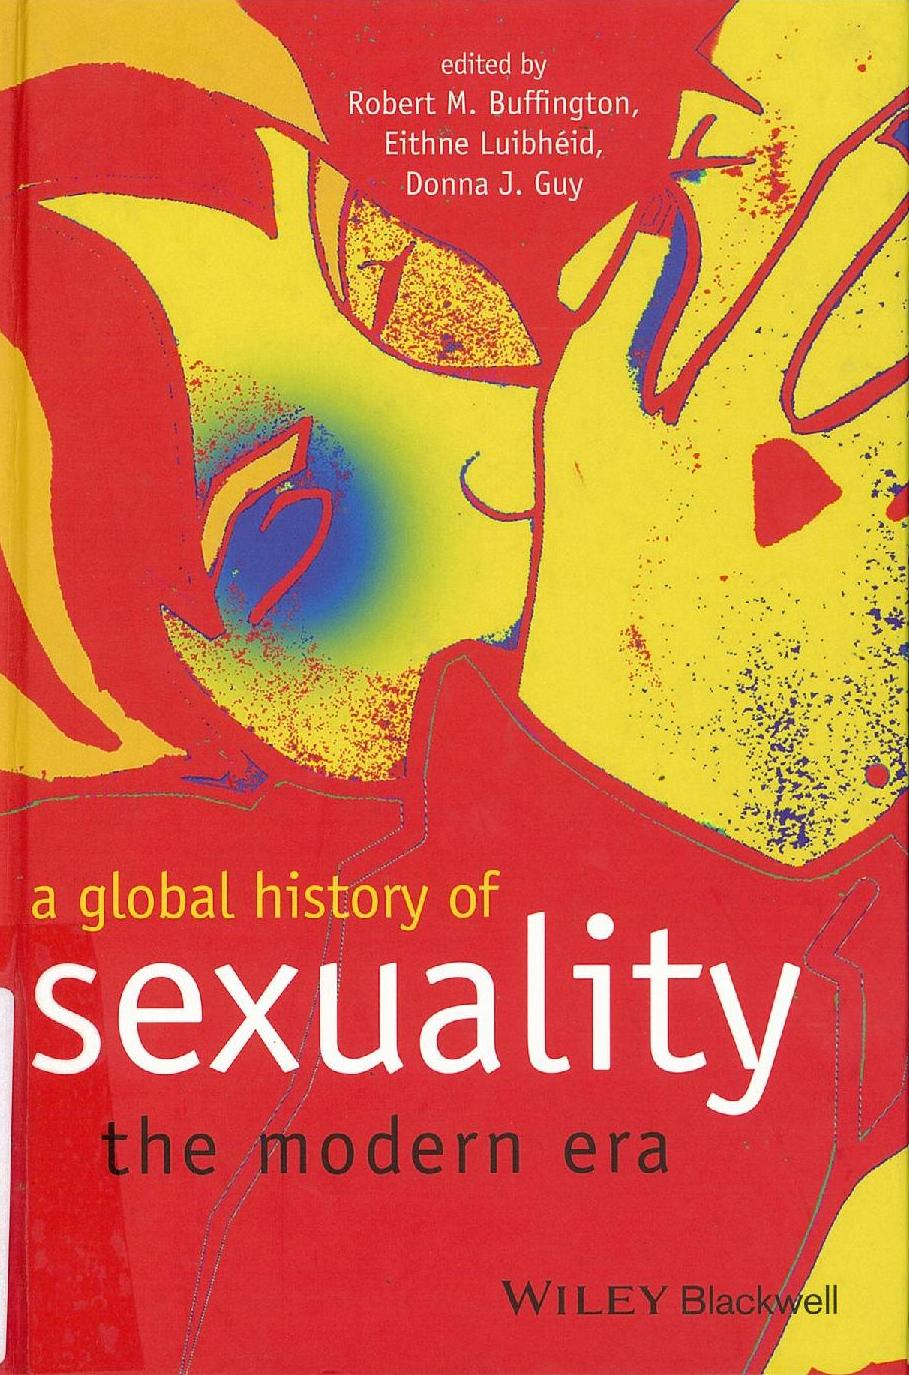 A global history of sexuality the modern era